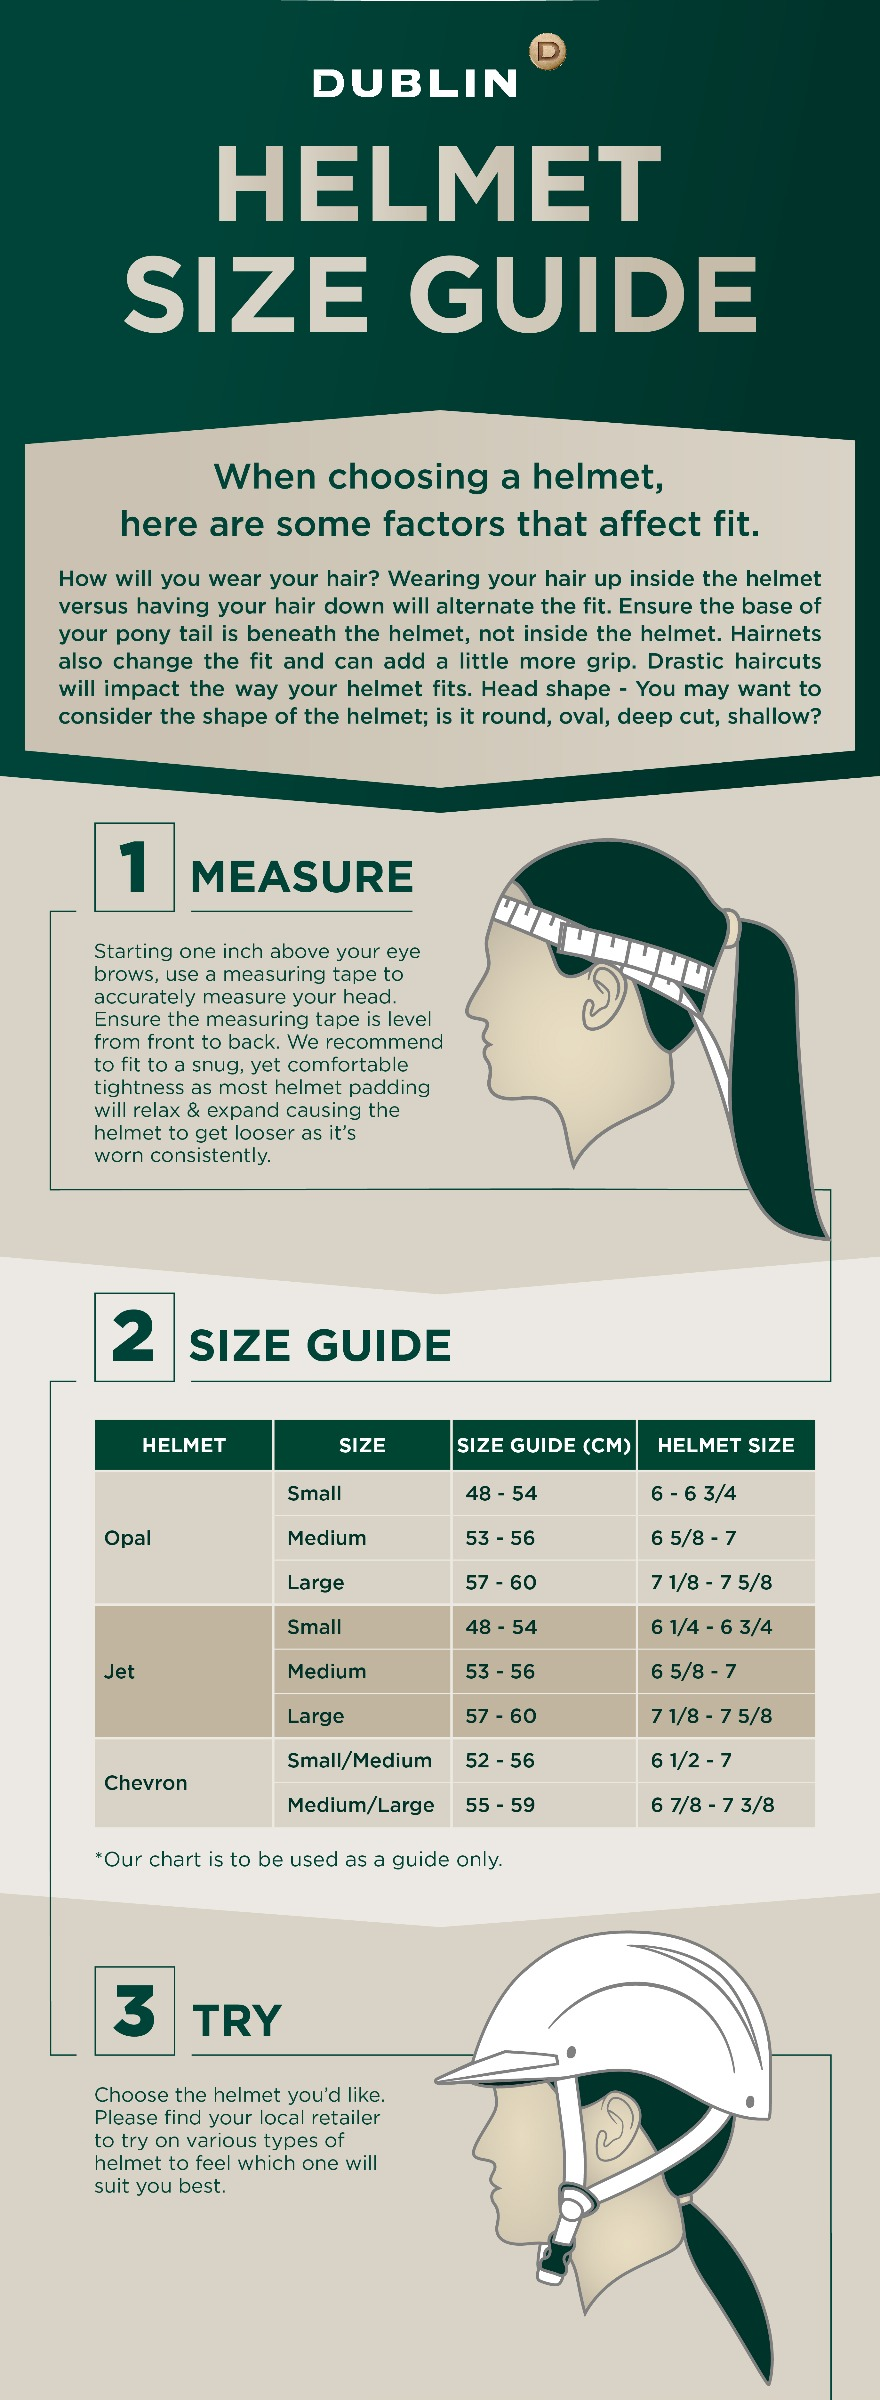 Helmet Size Guide by Dublin